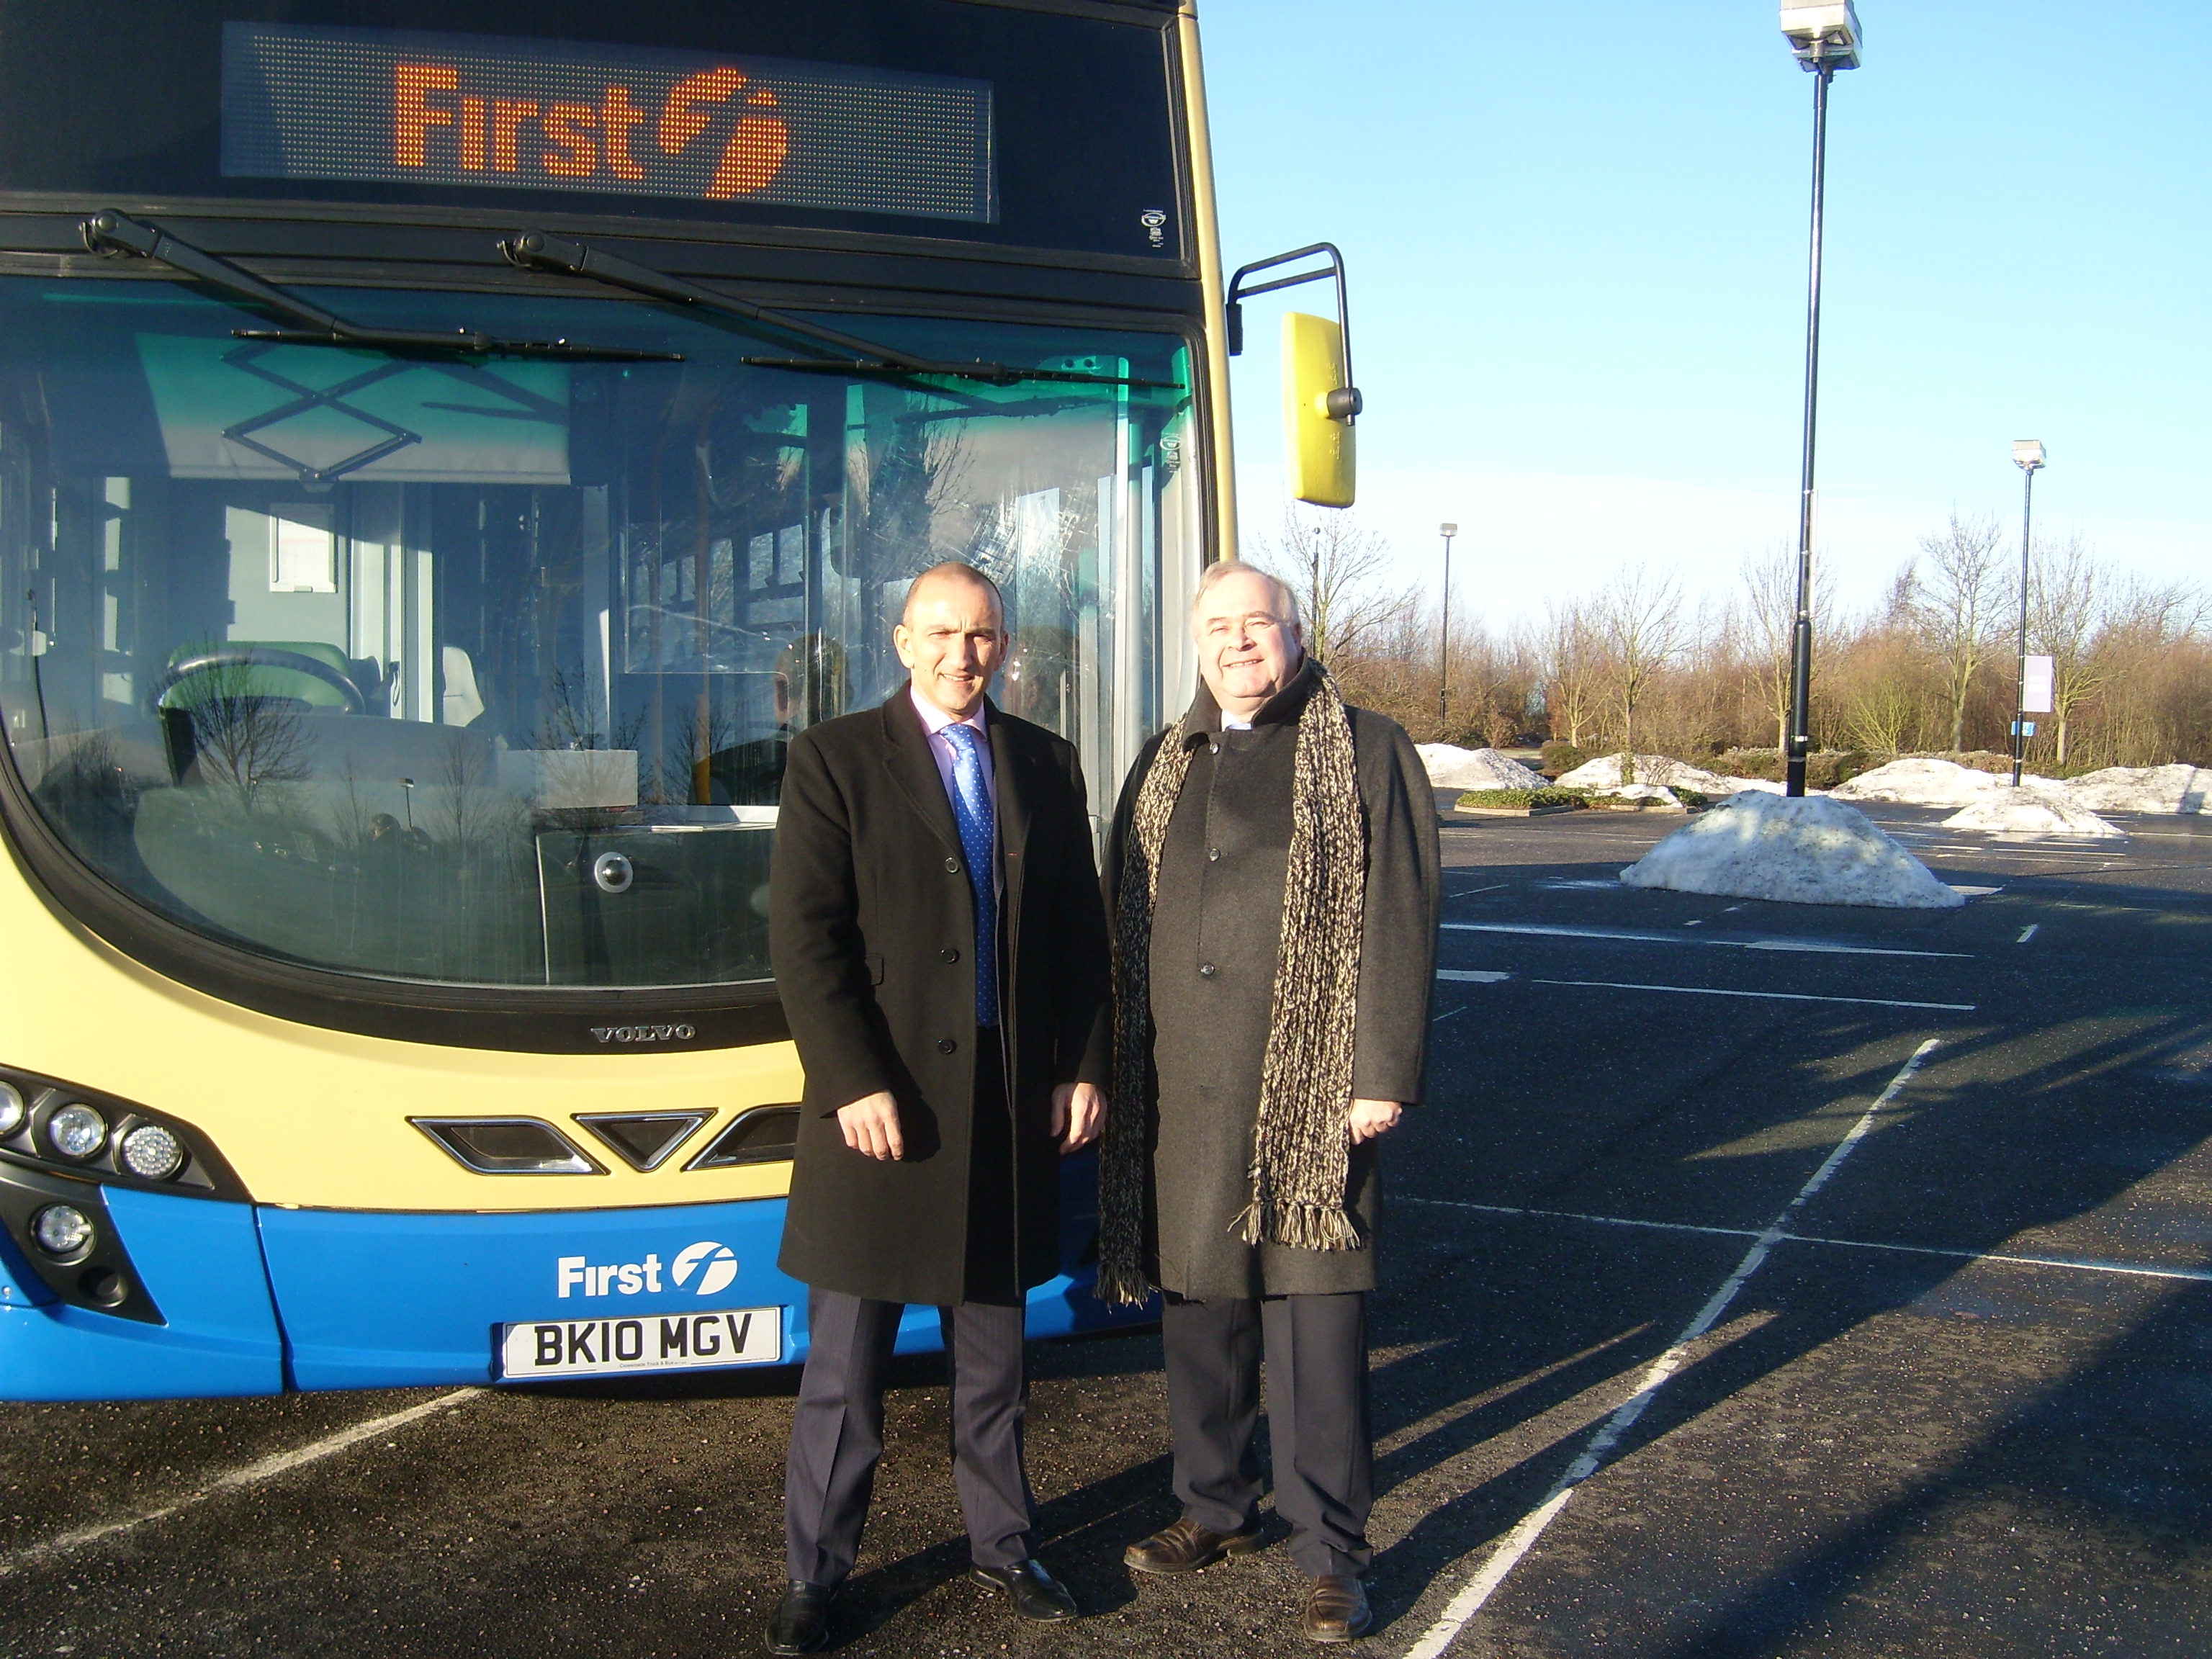 Steve Galloway with Dave Alexander Managing Director of First buses